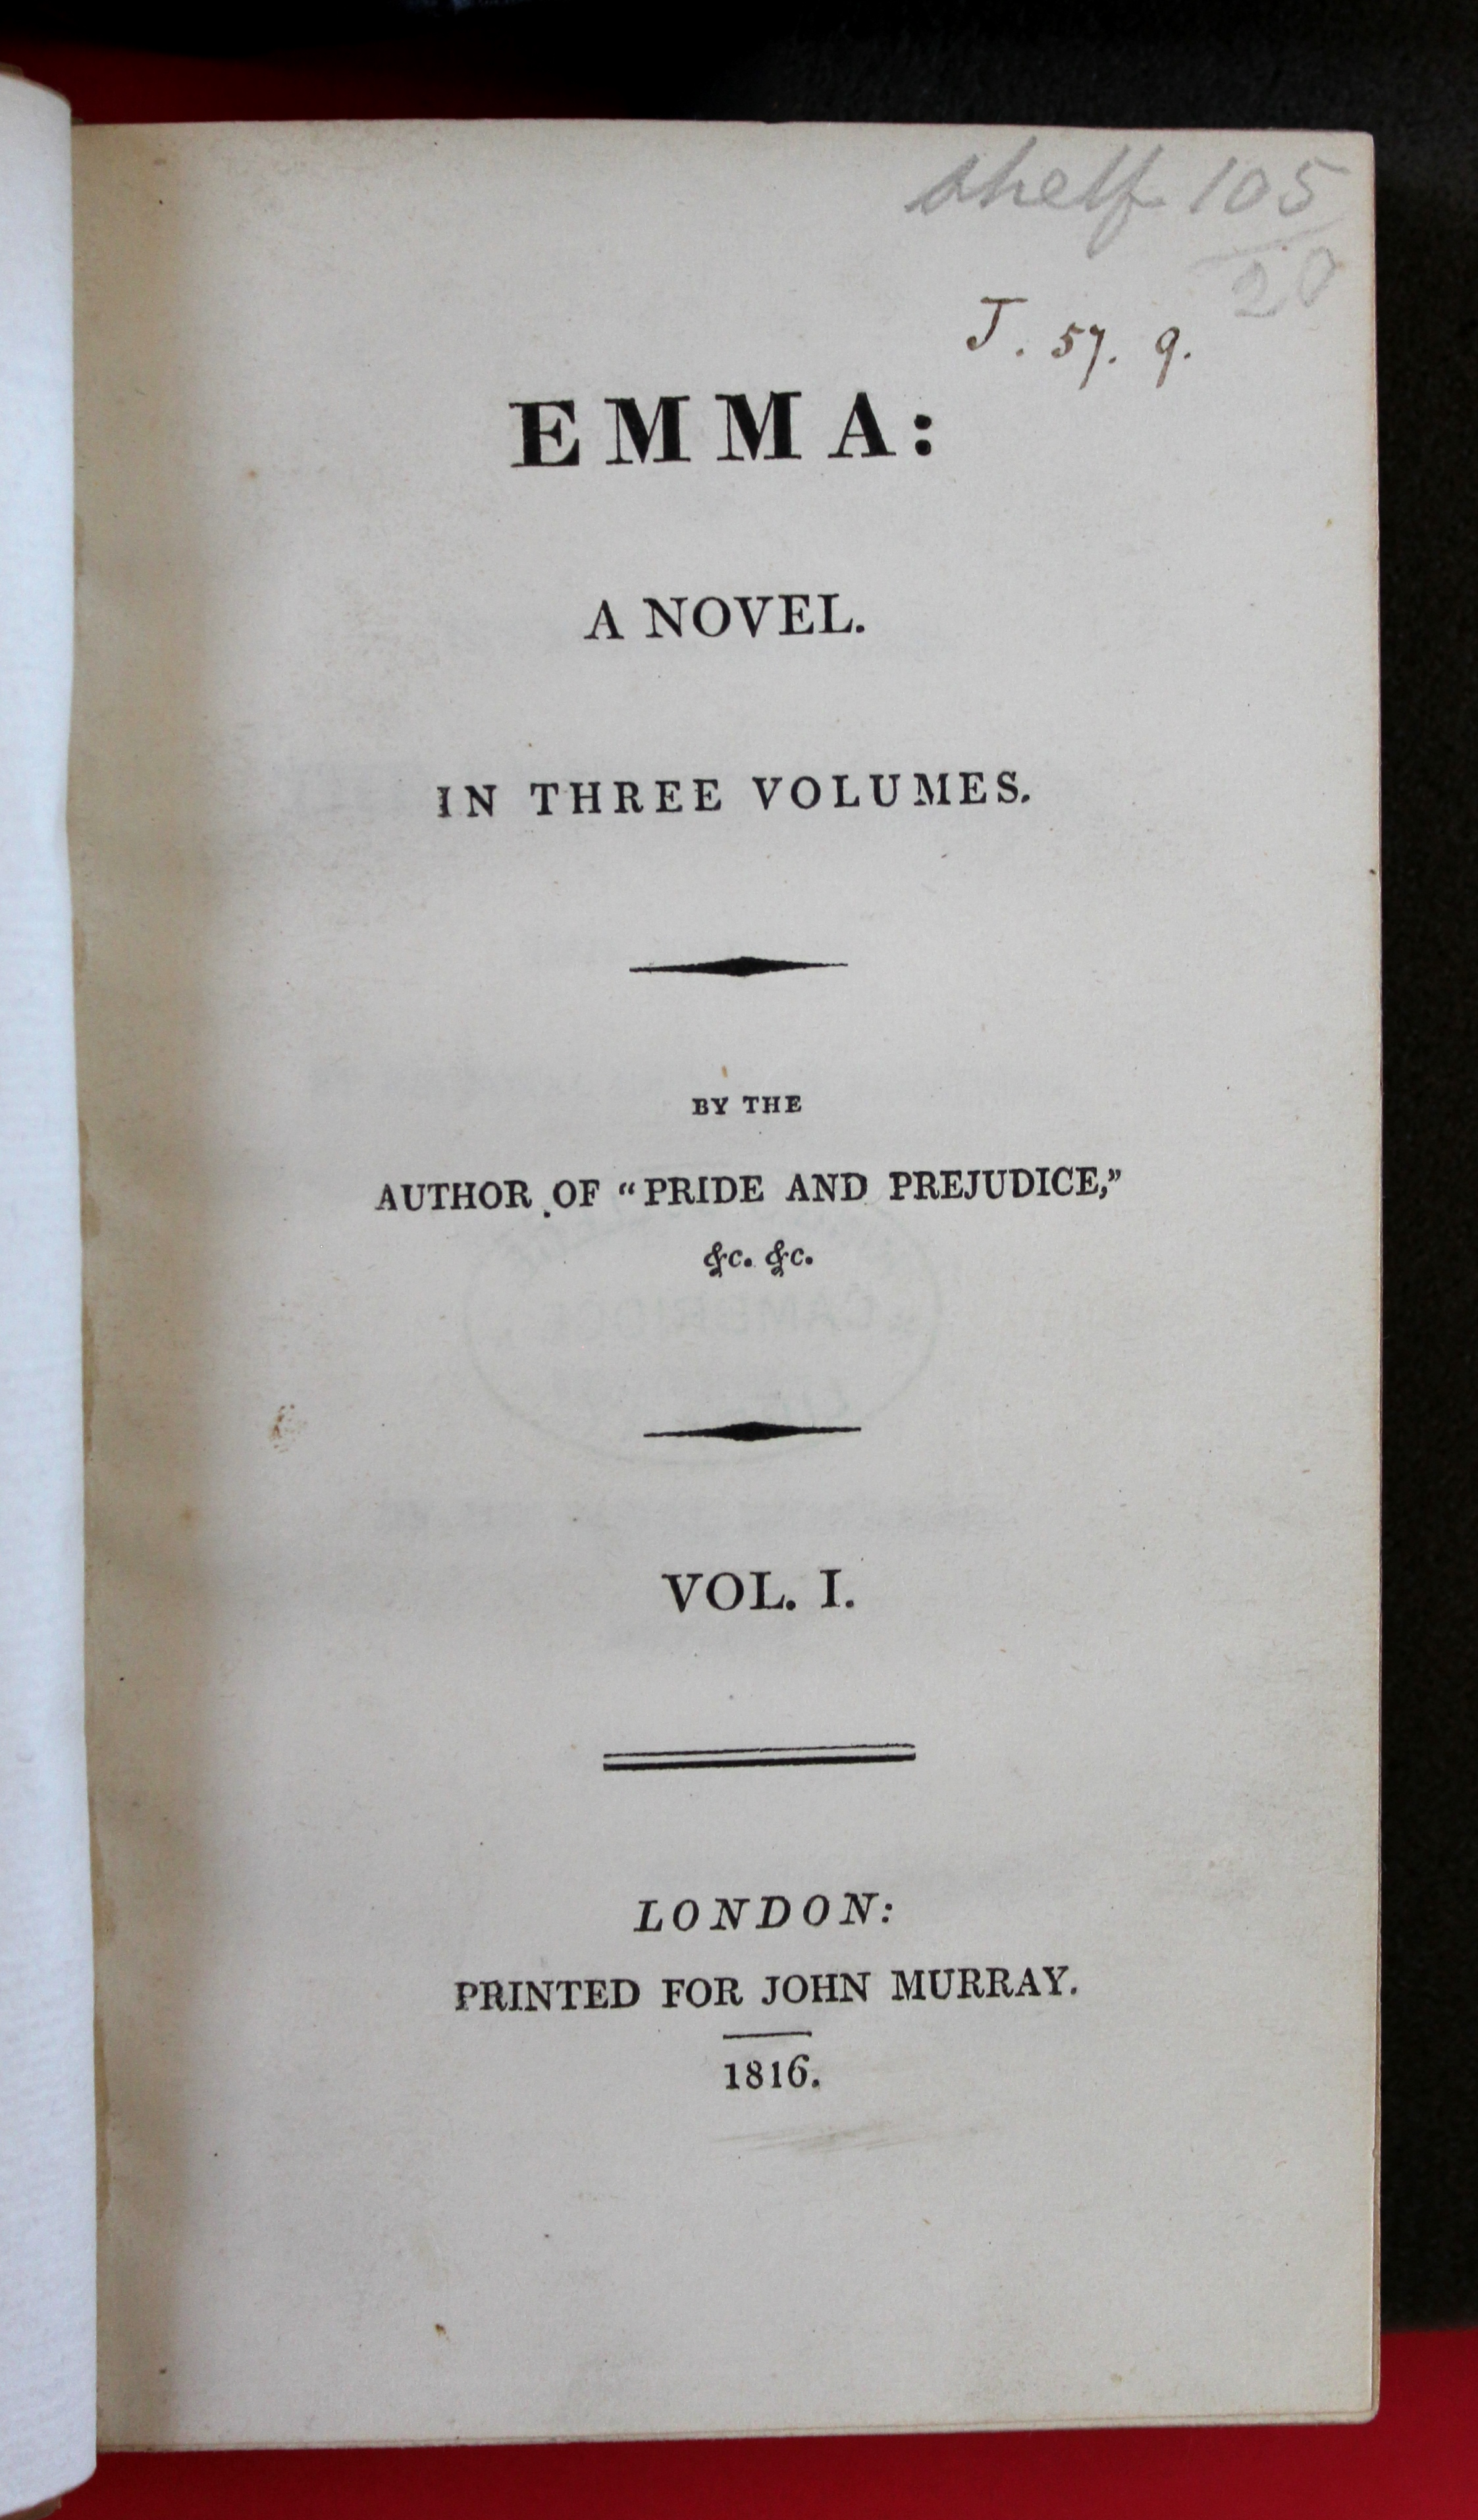 Emma by jane austen first edition 1st printing, 1816 extremely.